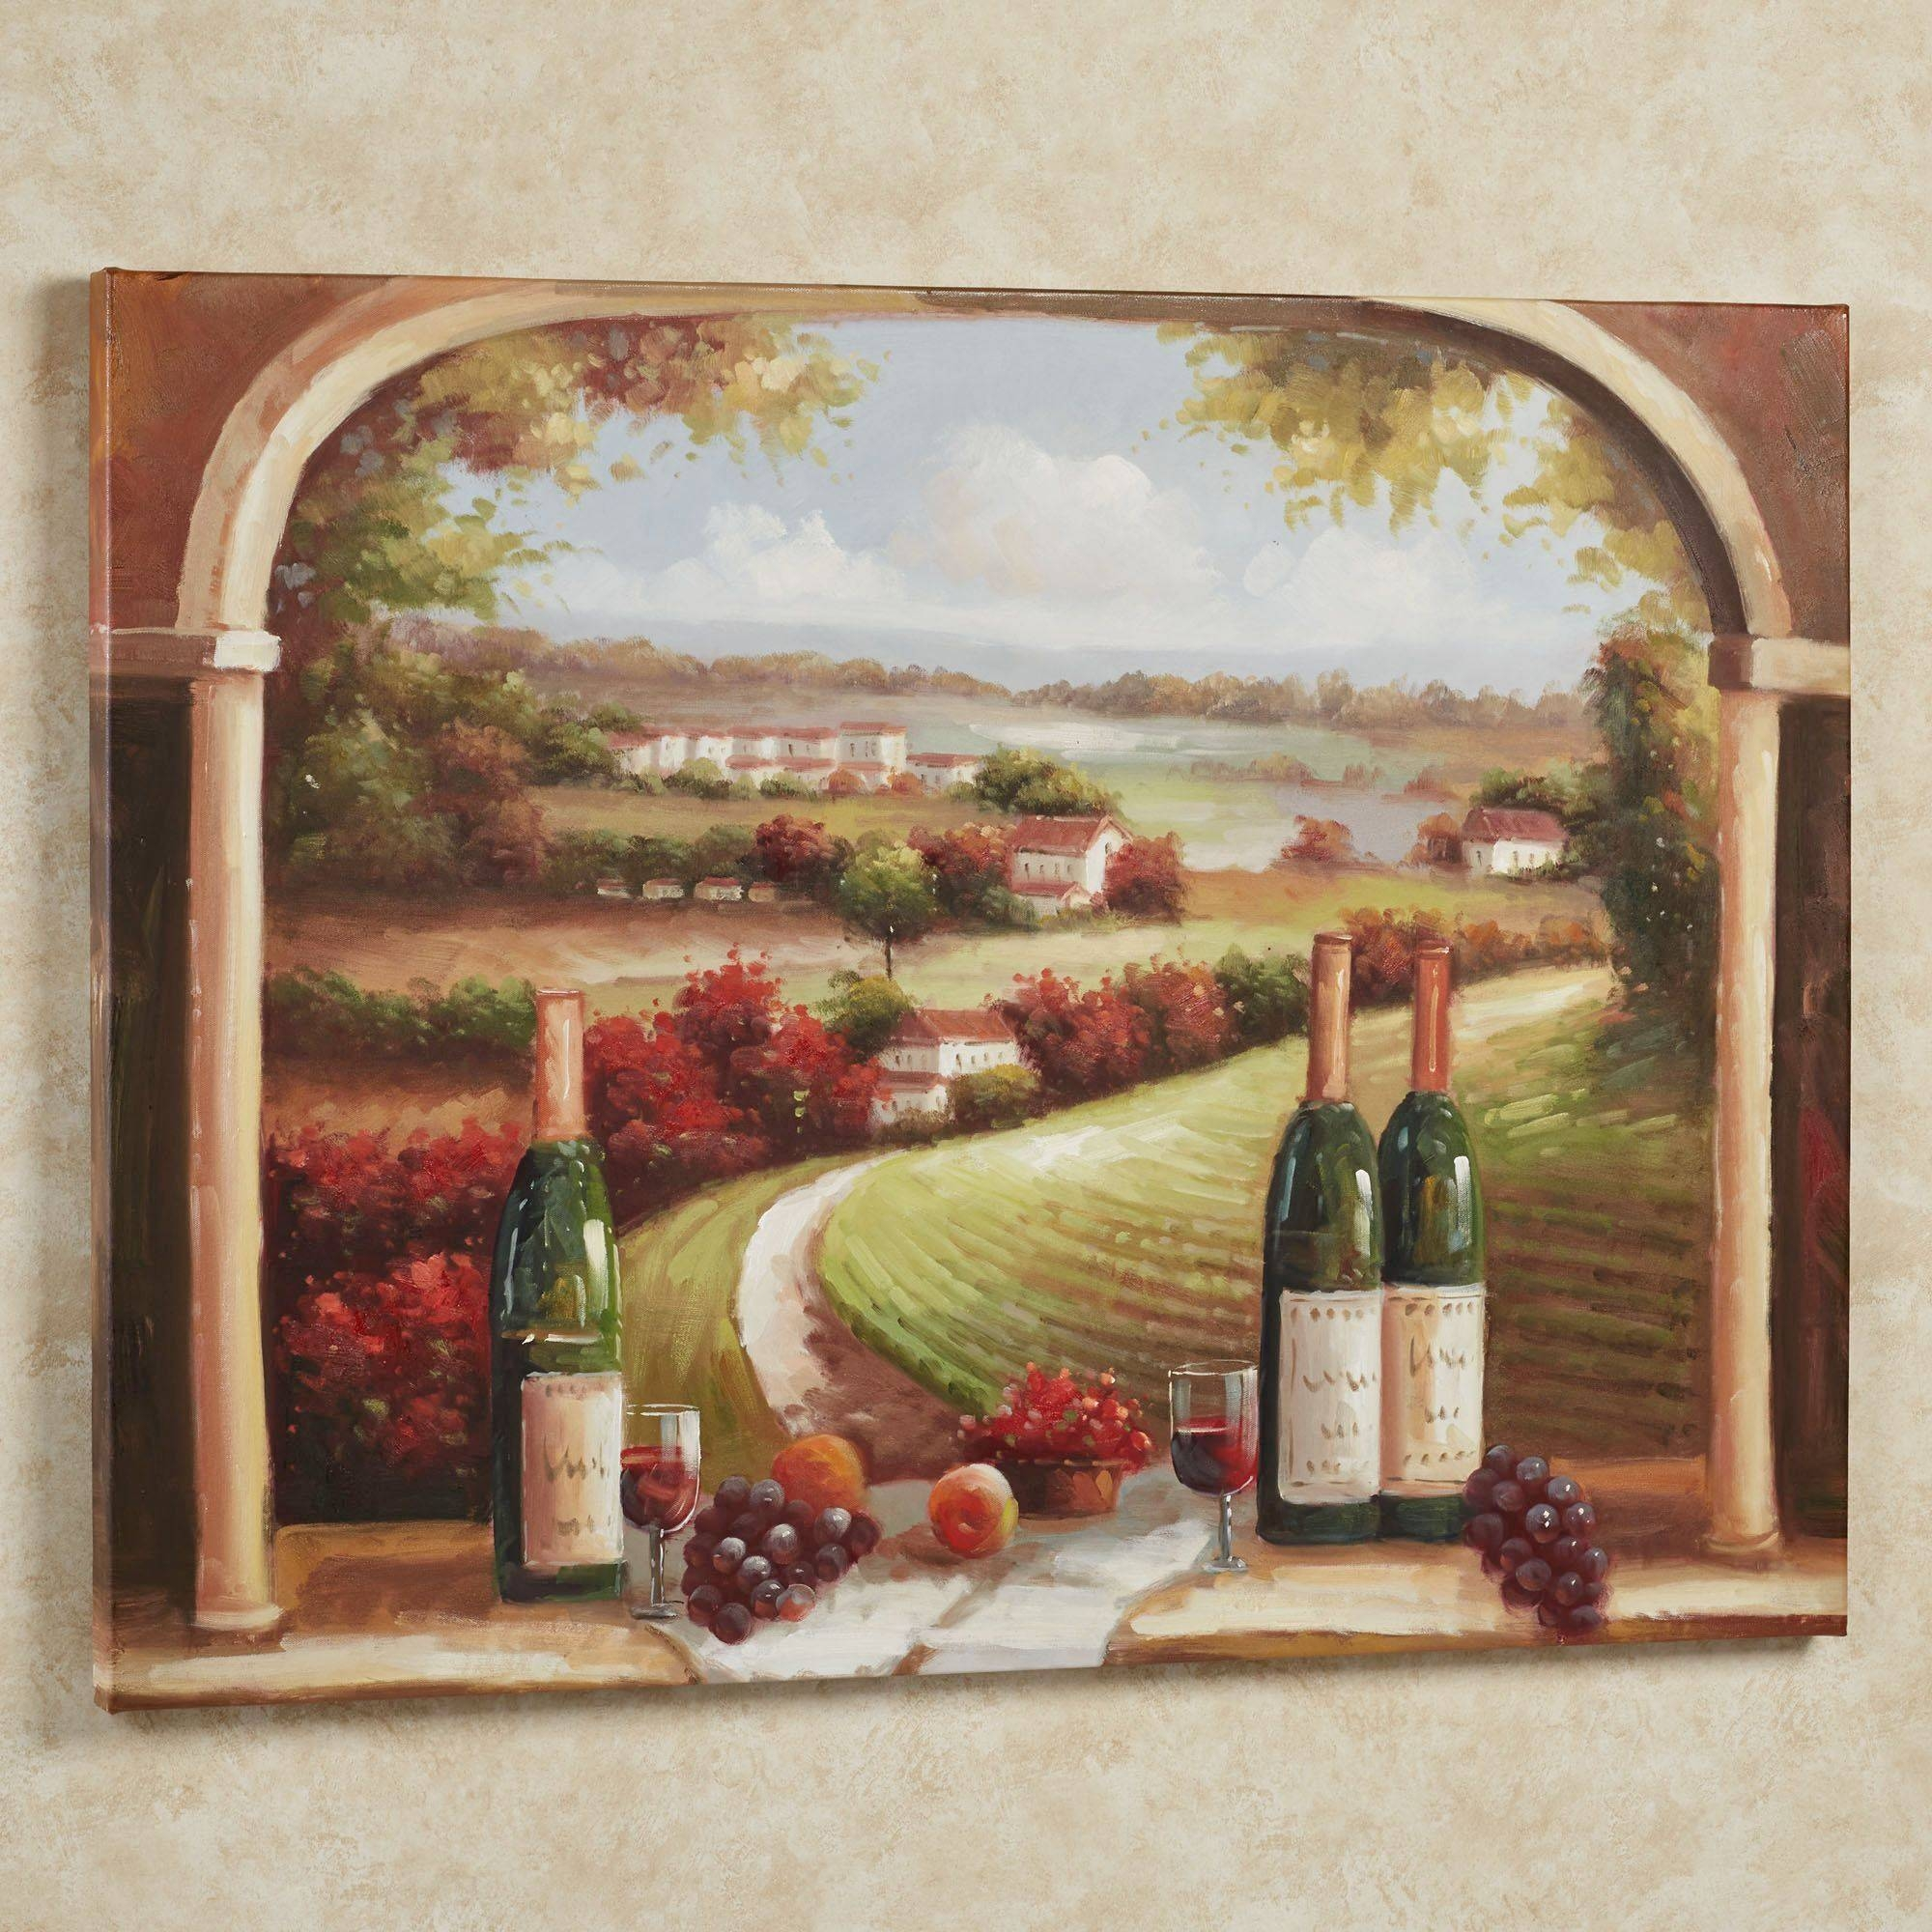 Wall Decor: Wine Wall Art Images. Wine Wall Art For Kitchen. Wine Within Most Up To Date Wine Theme Wall Art (Gallery 7 of 20)